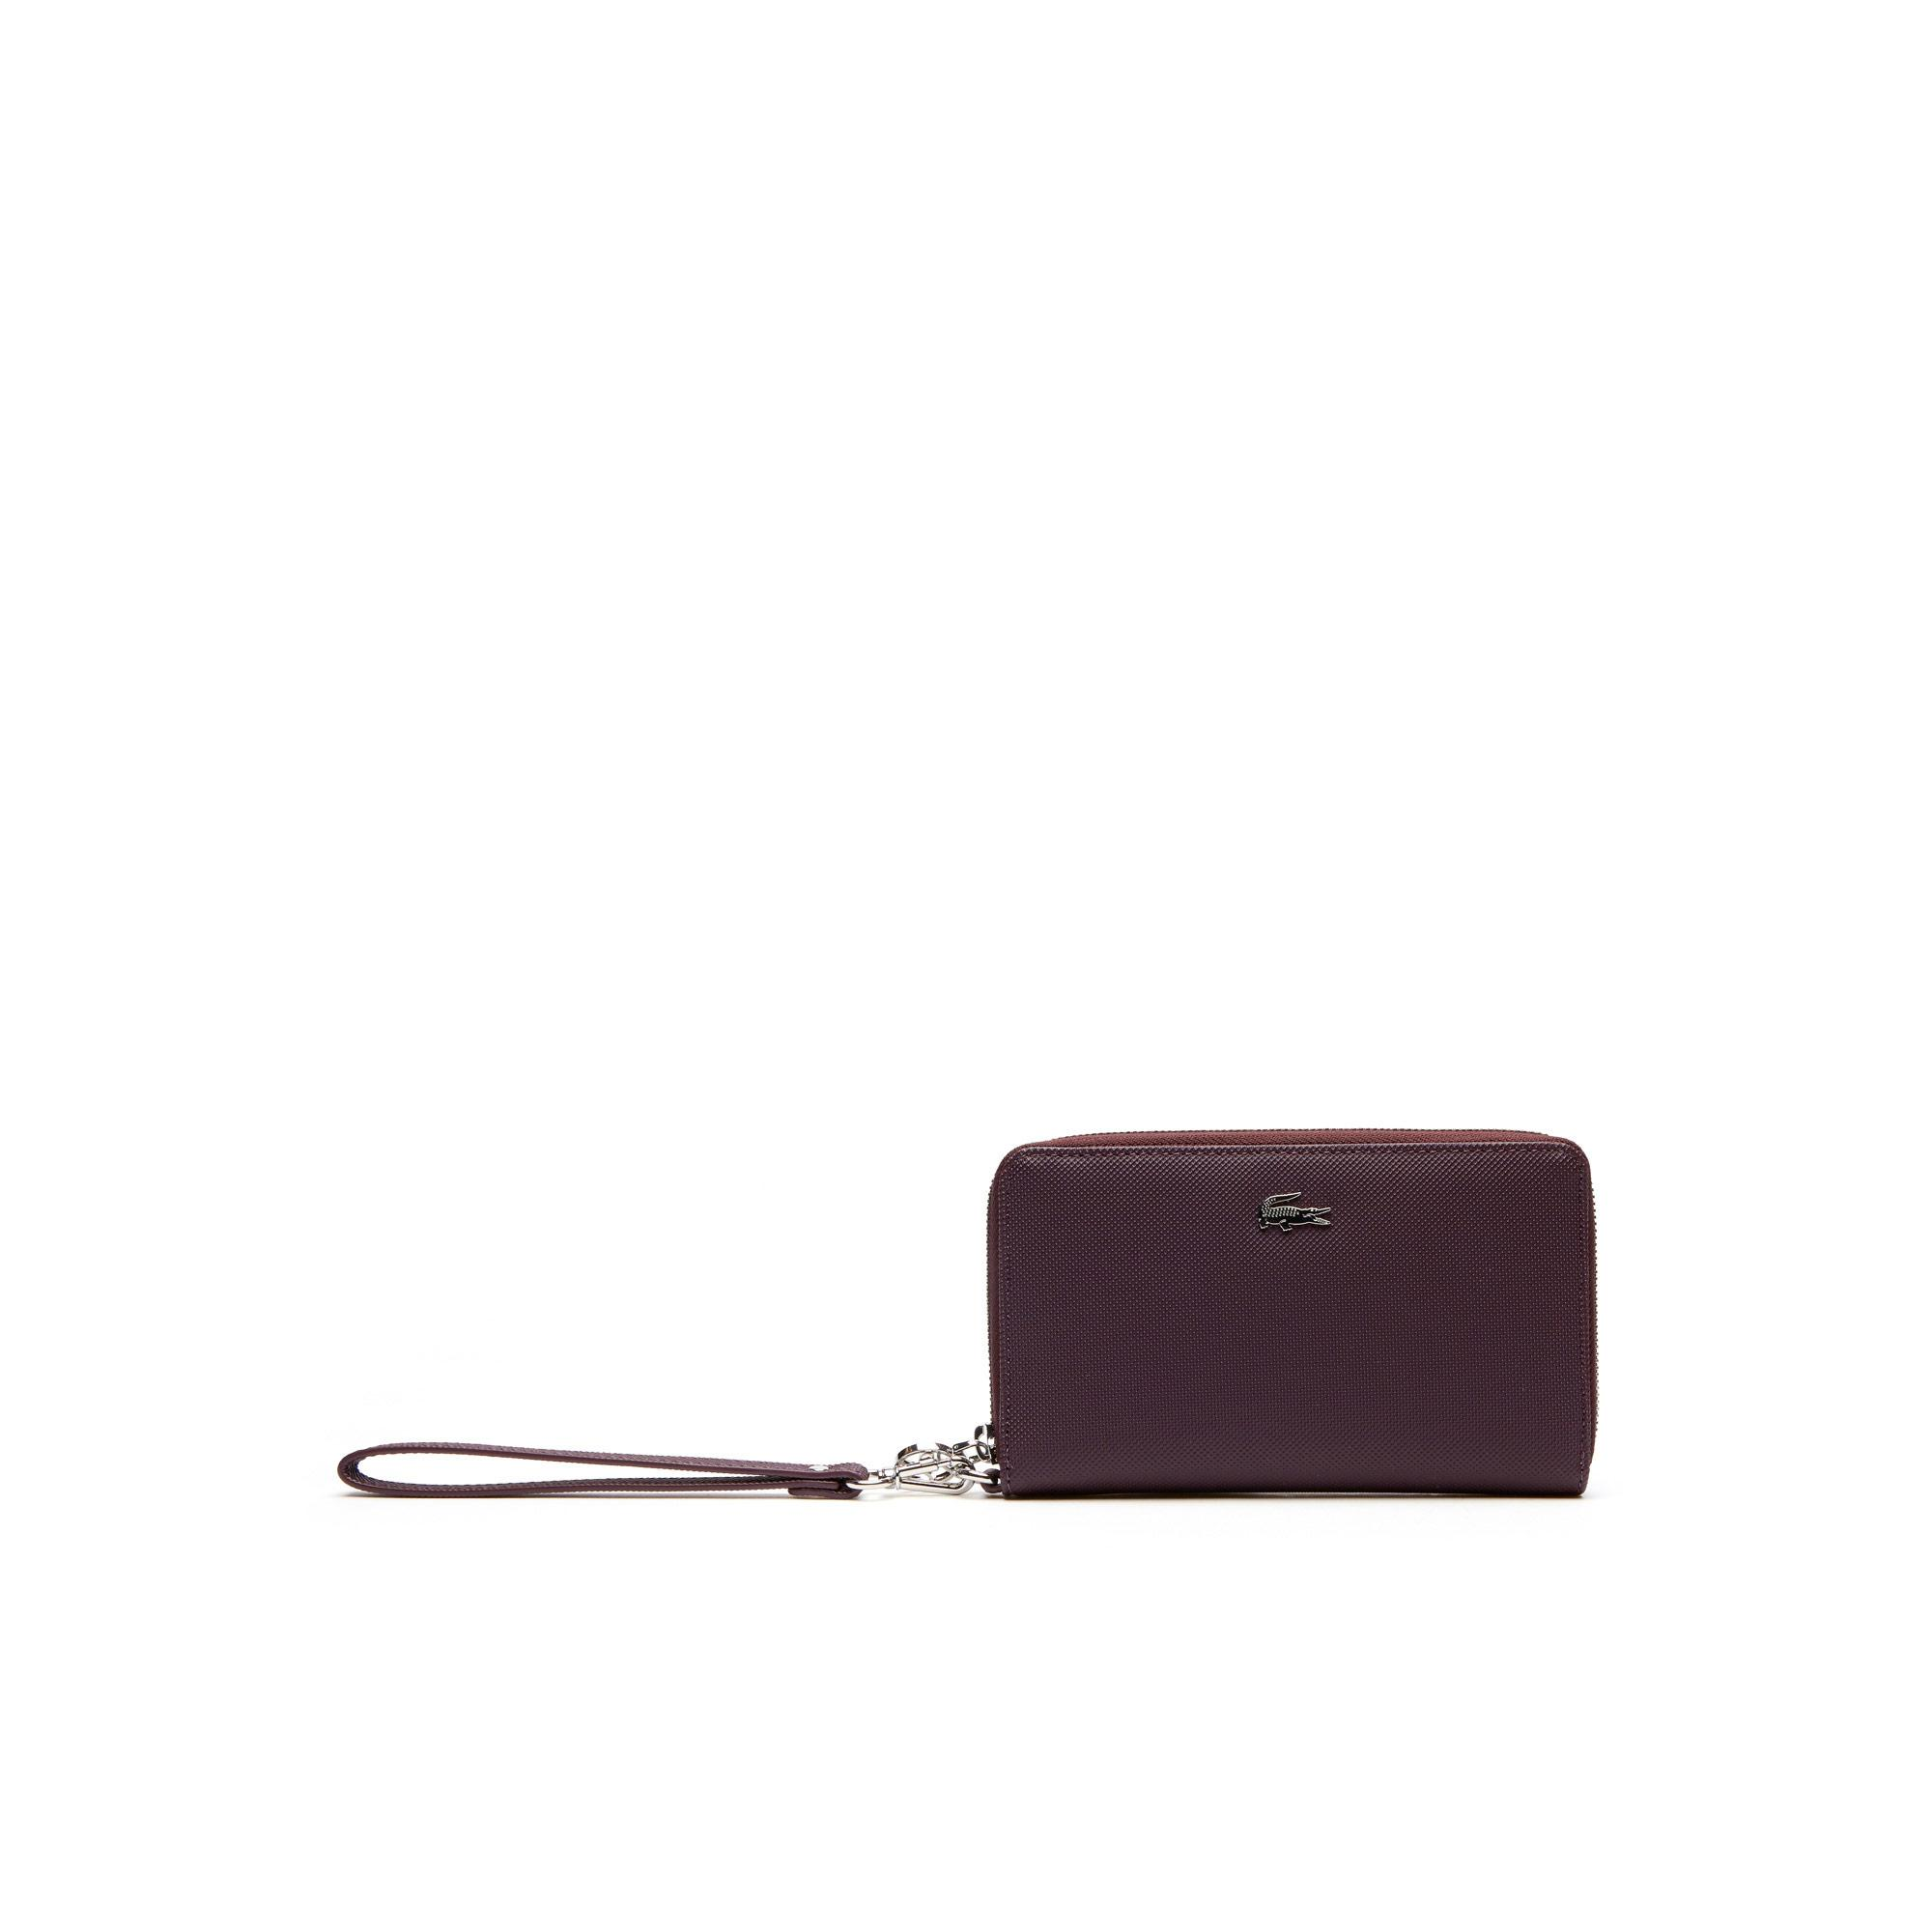 Lacoste Women's Bordeaux Wallet